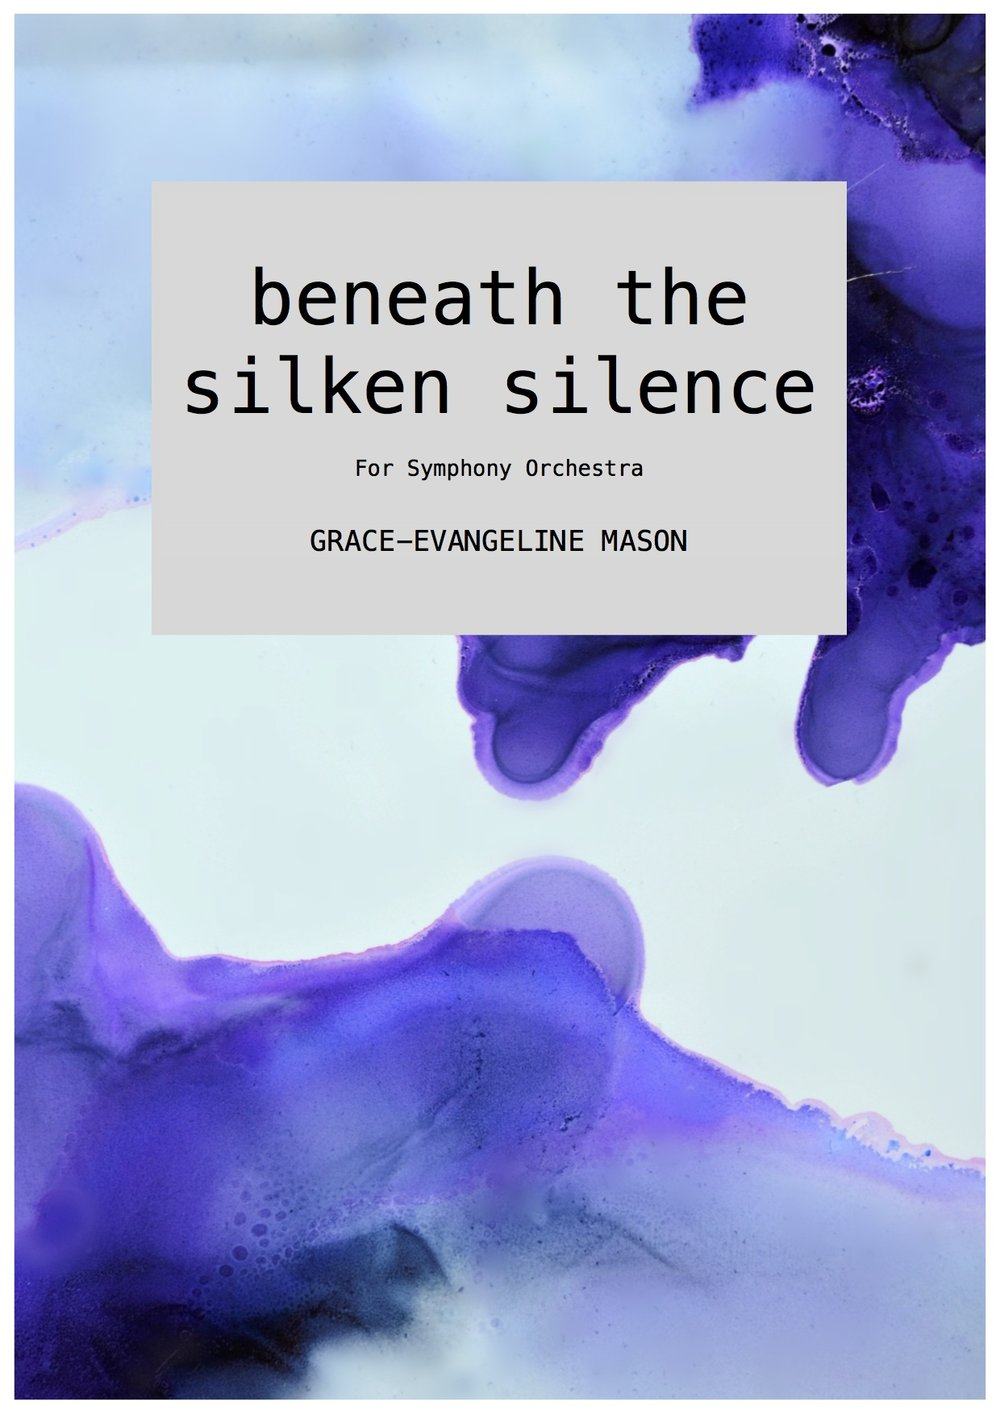 'beneath the silken silence' (2018) - for Symphony OrchestraDuration: 3'30